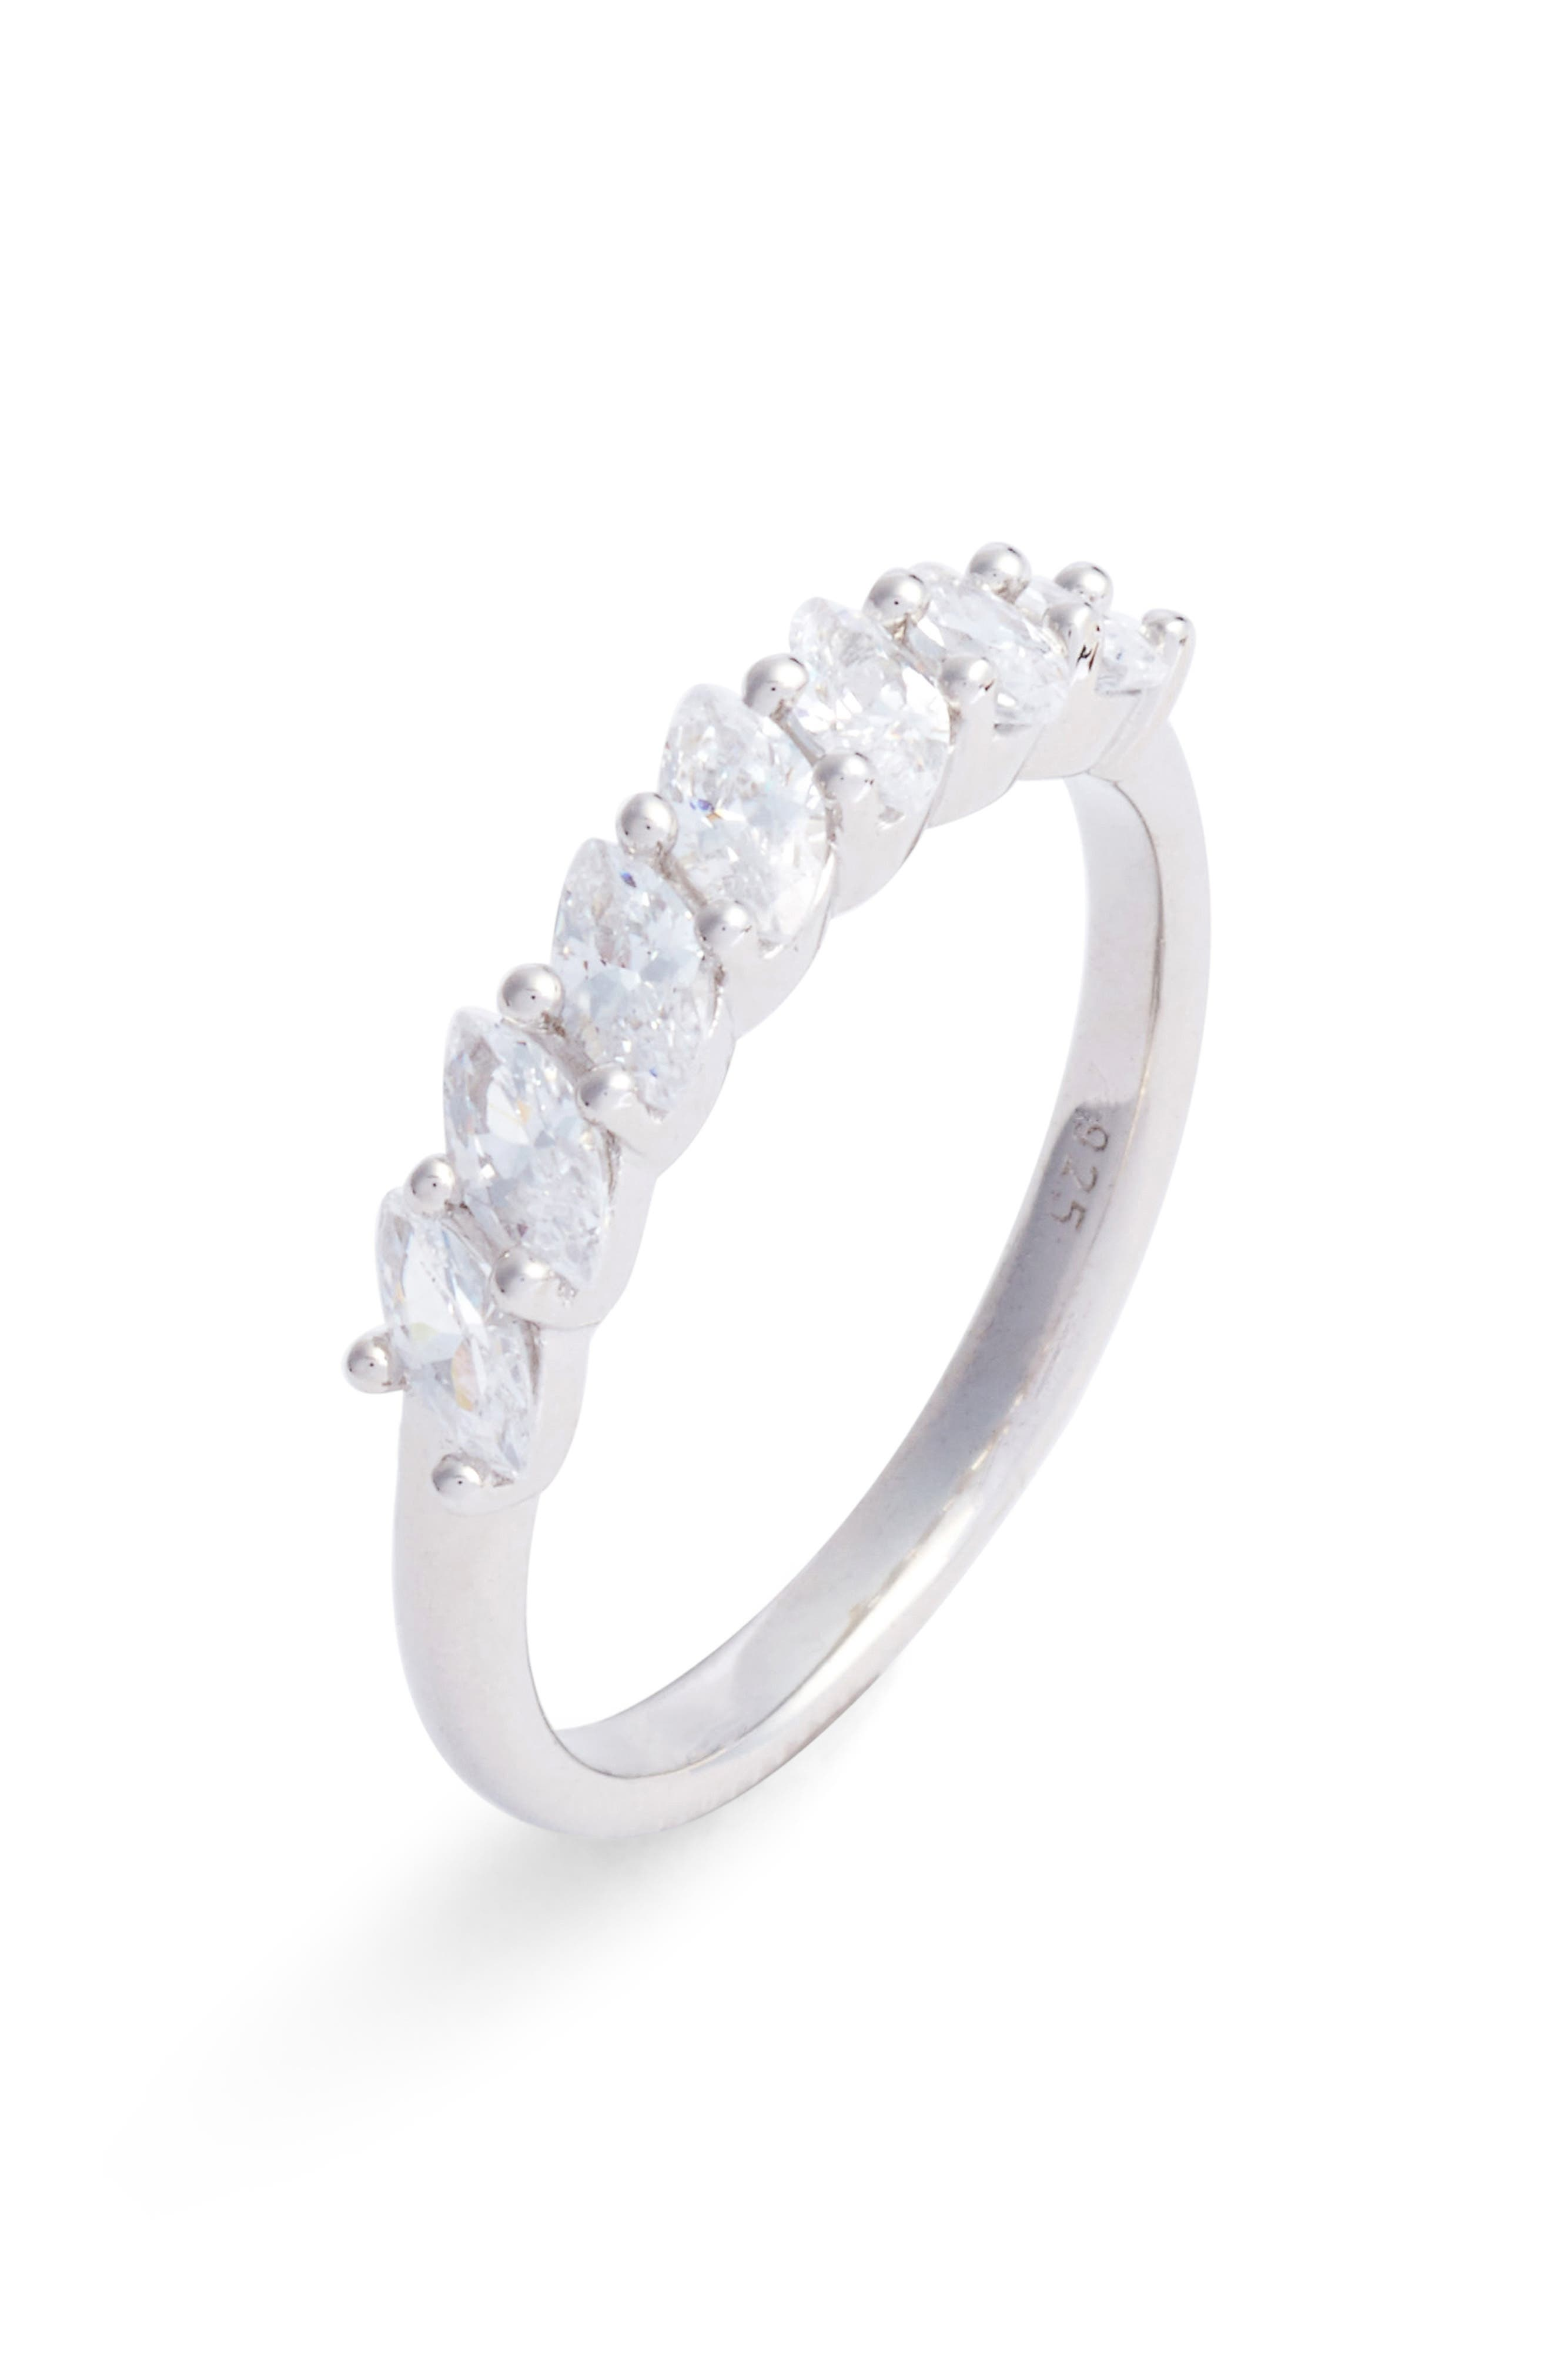 Marquise Cubic Zirconia Ring,                             Main thumbnail 1, color,